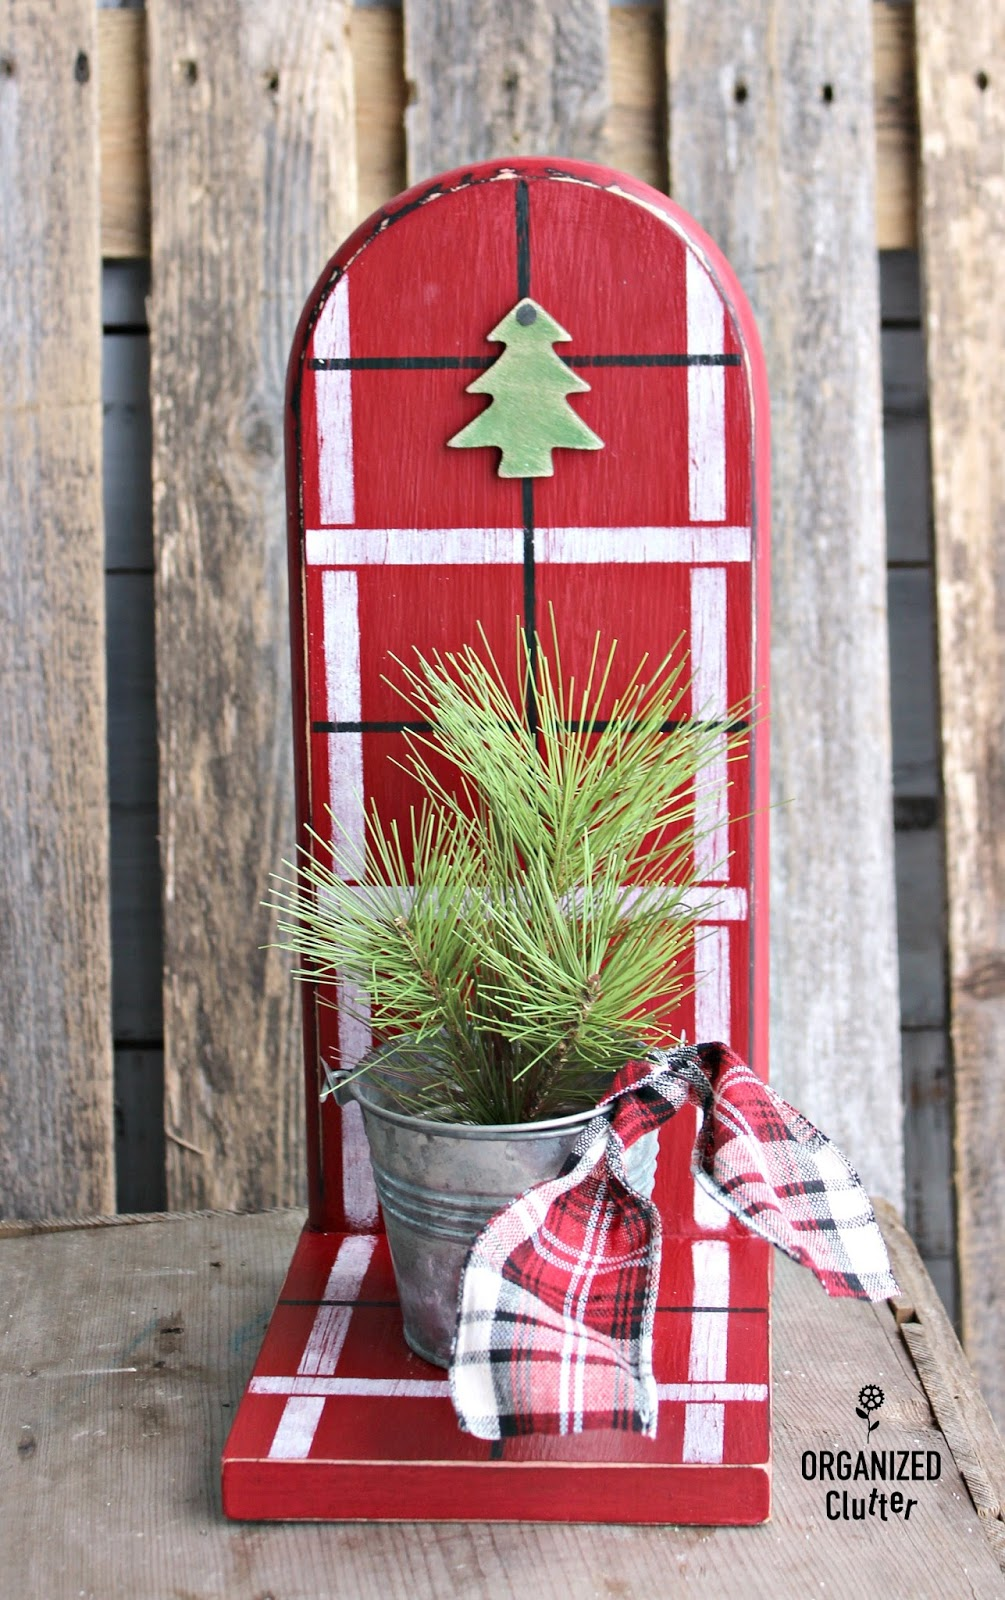 Repurposed paper towel holder to plaid painted Christmas shelf by Organized Clutter, featured on Funky Junk Interiors